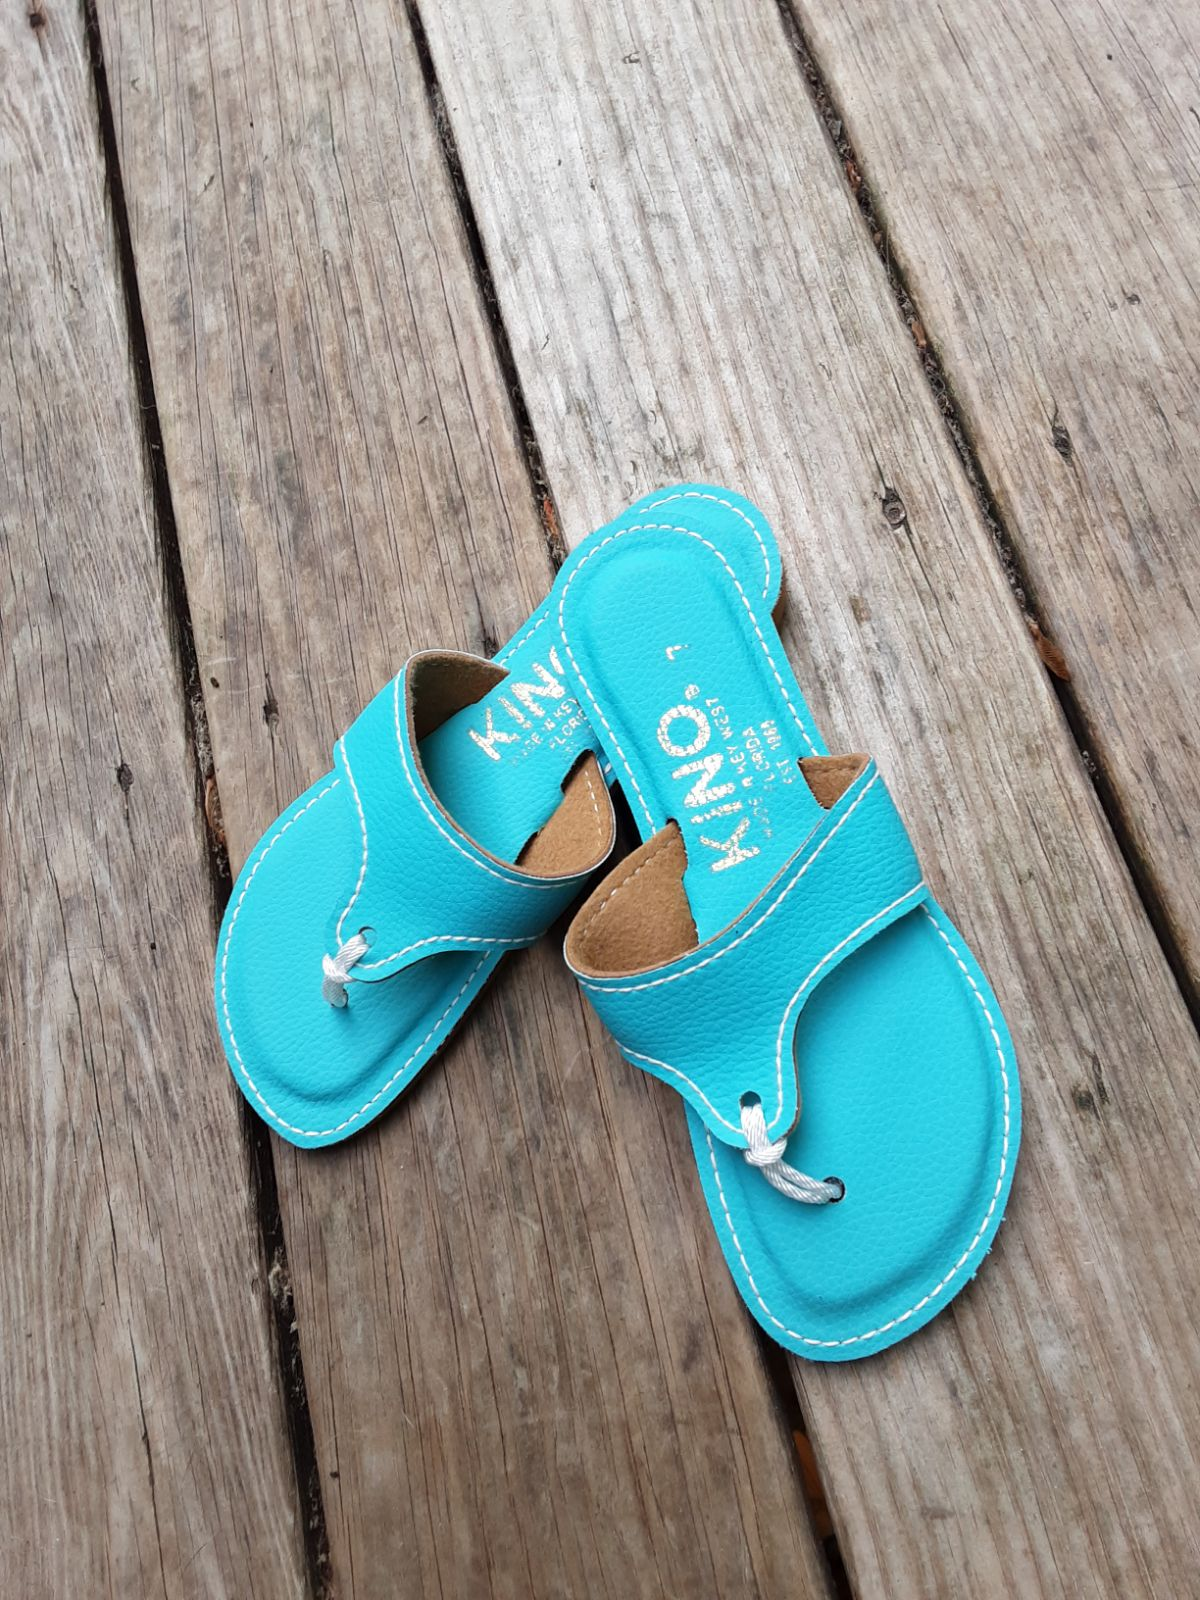 Kino Sandals size 7 NEW